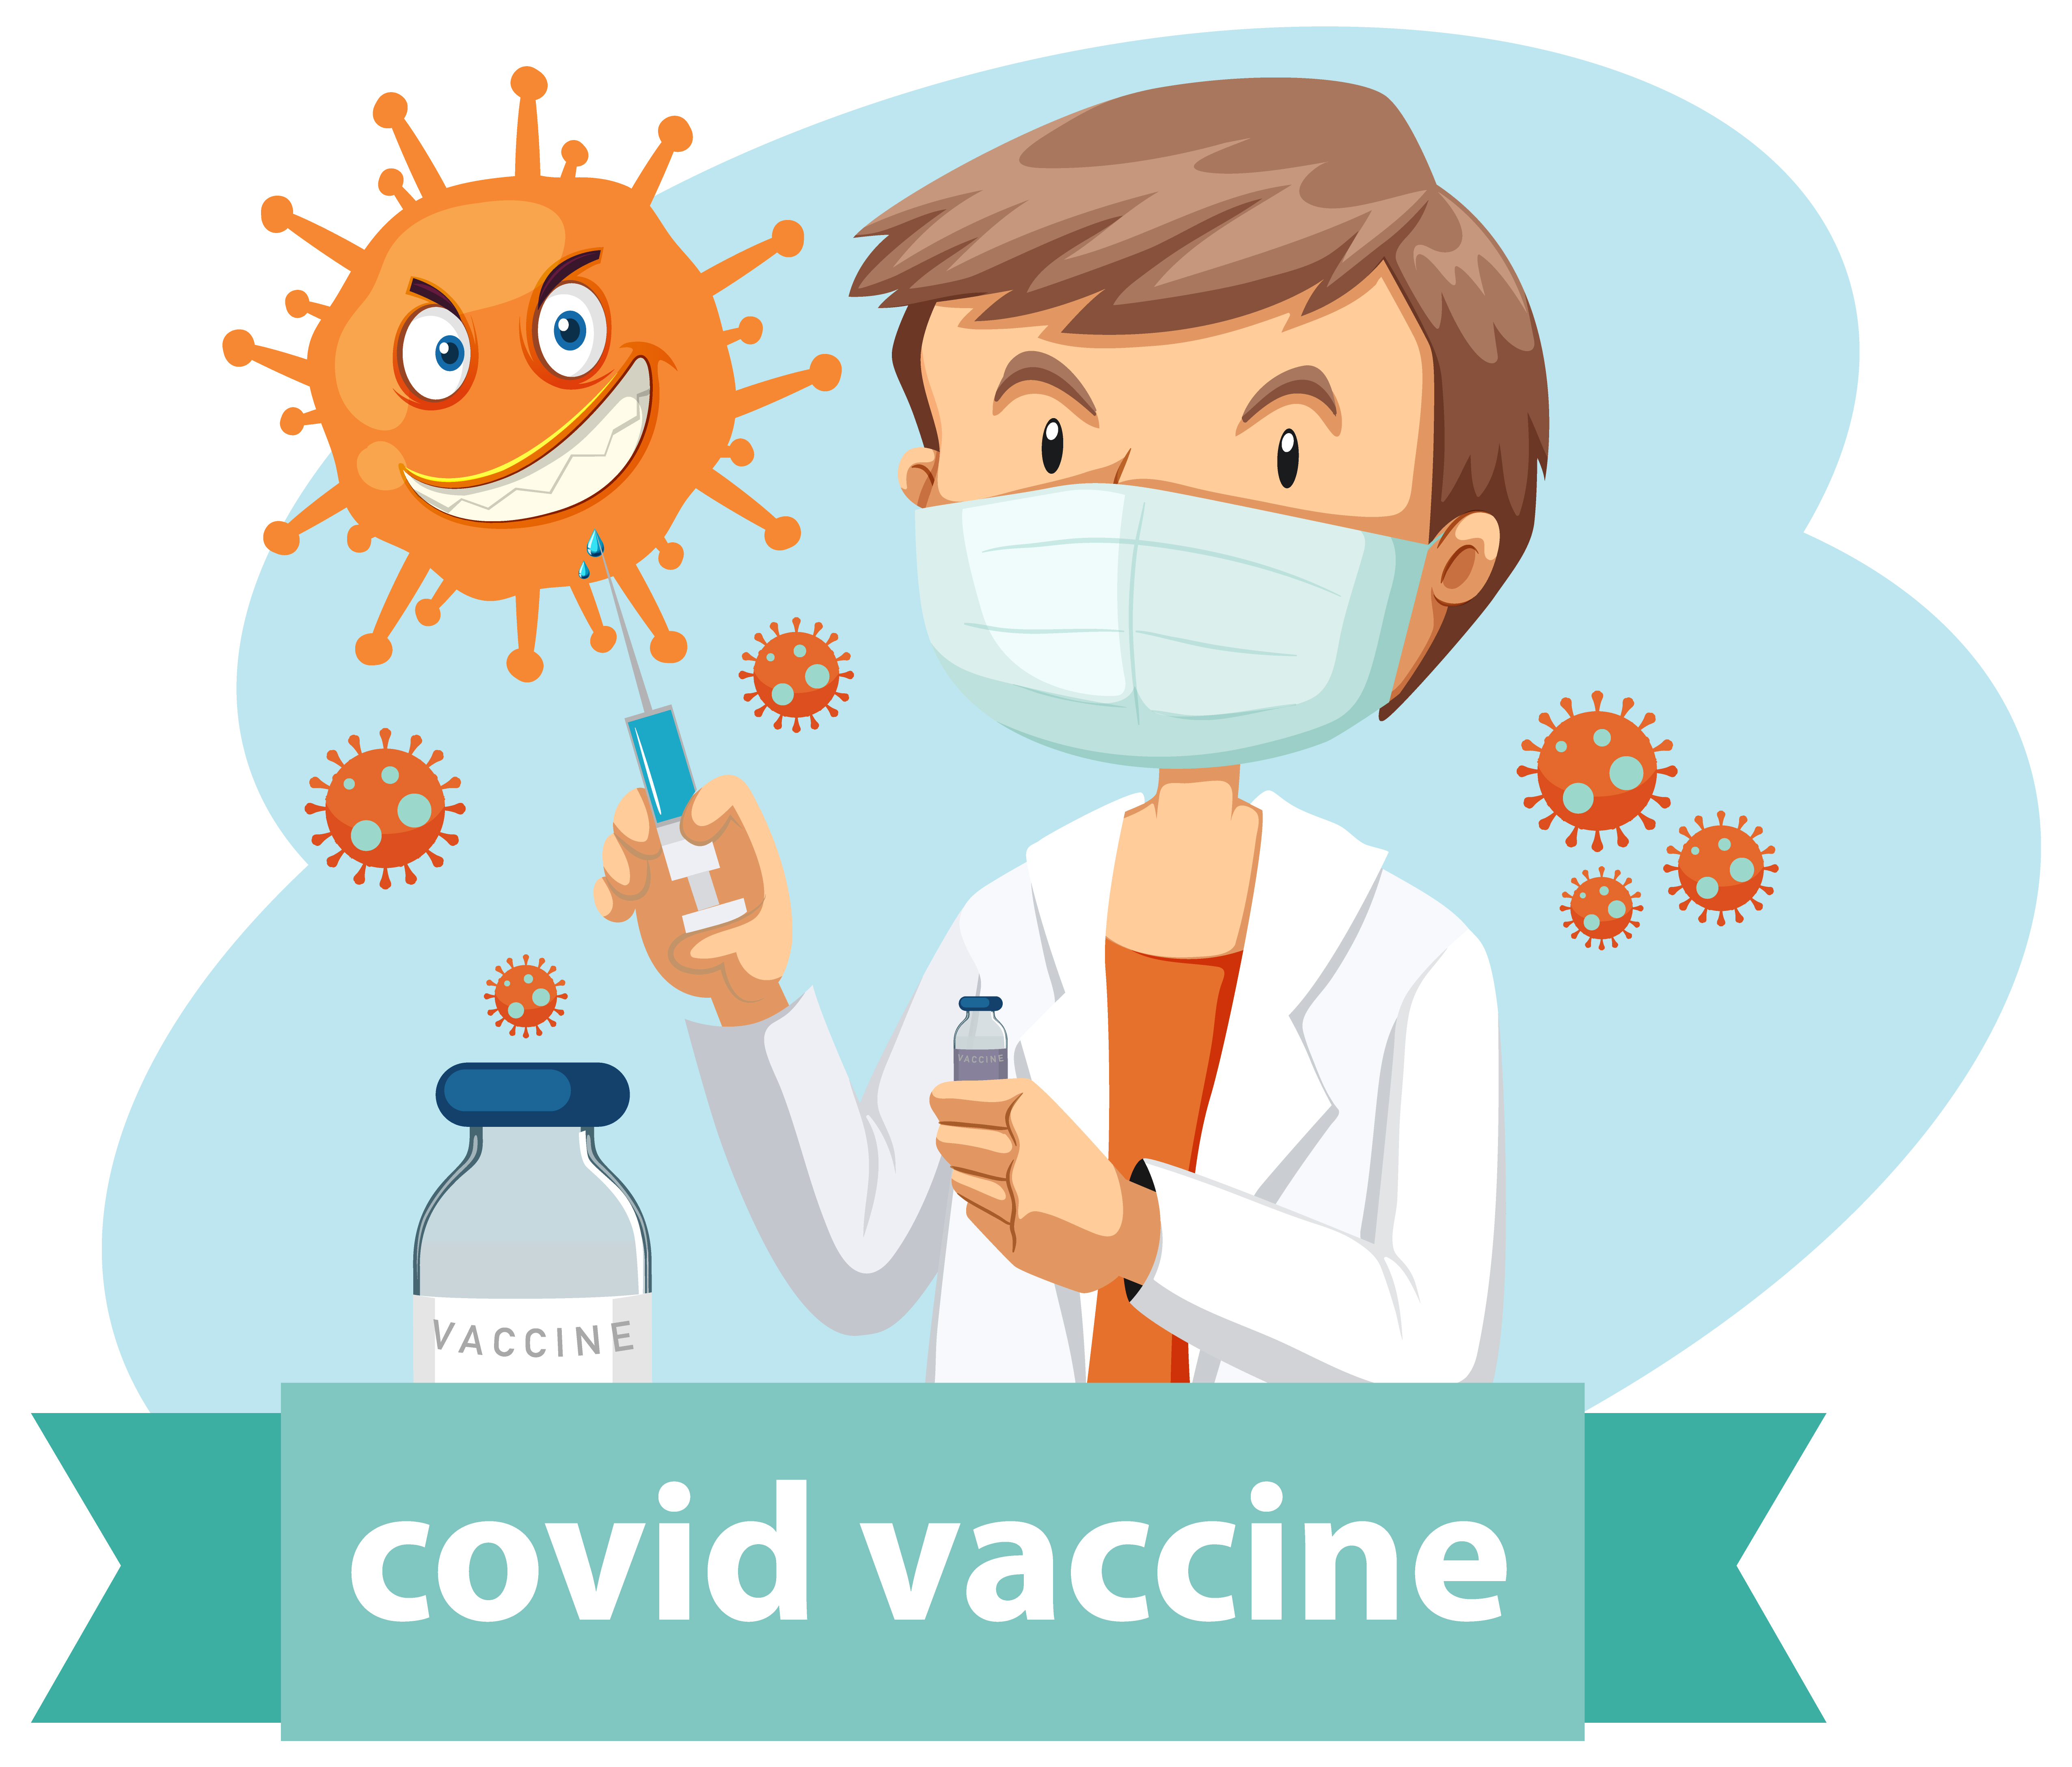 A doctor wears mask and holding medical syringe with needle for covid-19 or coronavirus logo or banner illustration